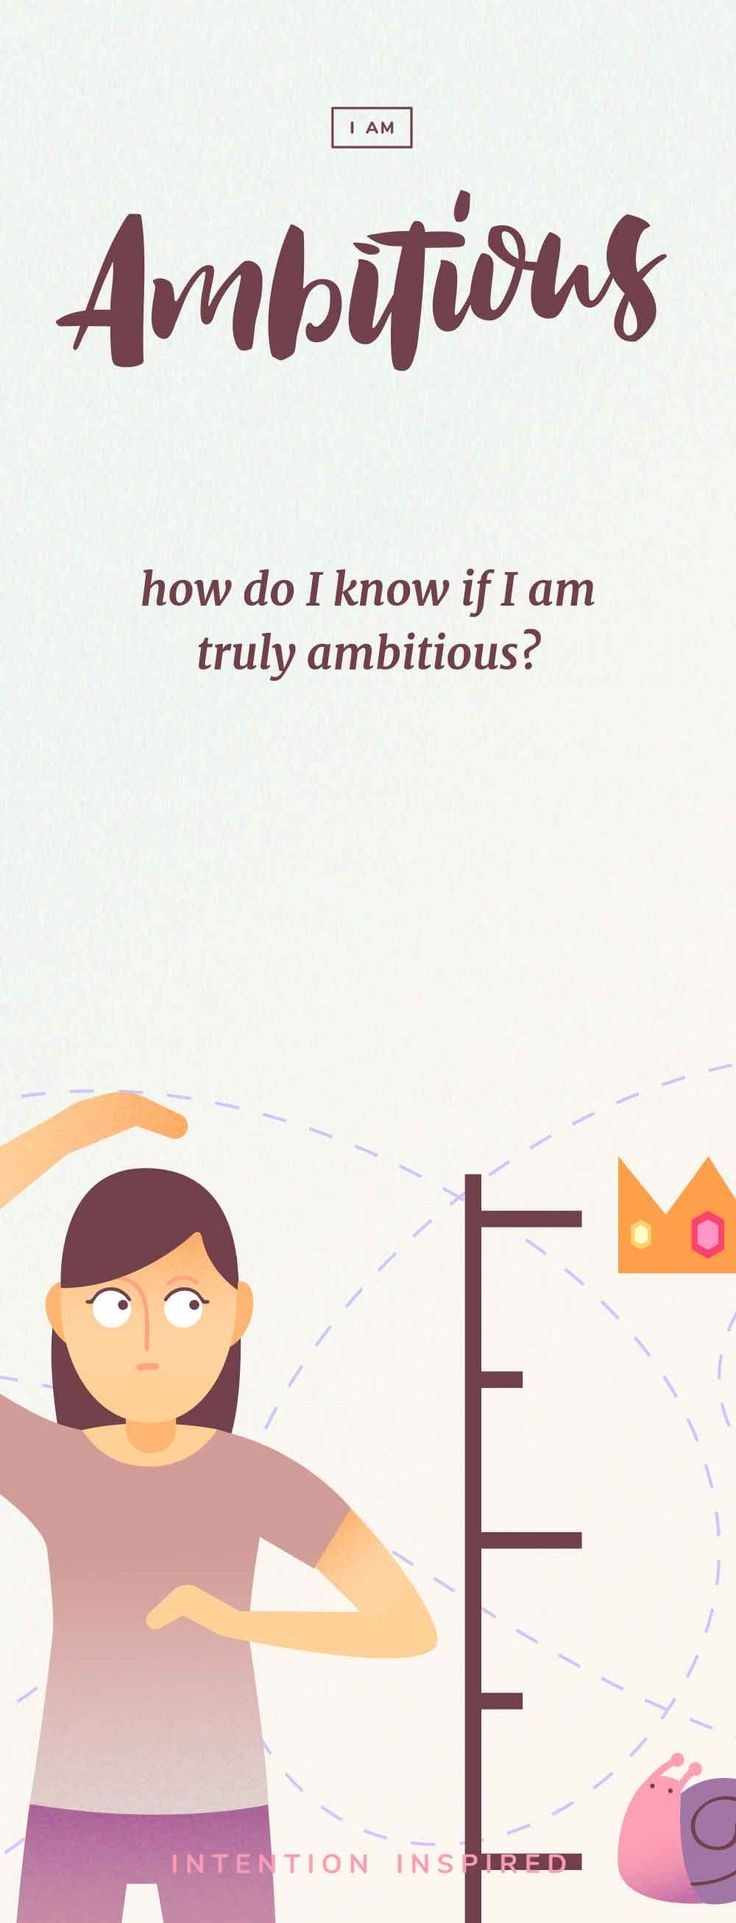 If someone asked you to describe your personality, would ambitious make it to the list? And when it comes down to it, what does being ambitious really mean exactly?